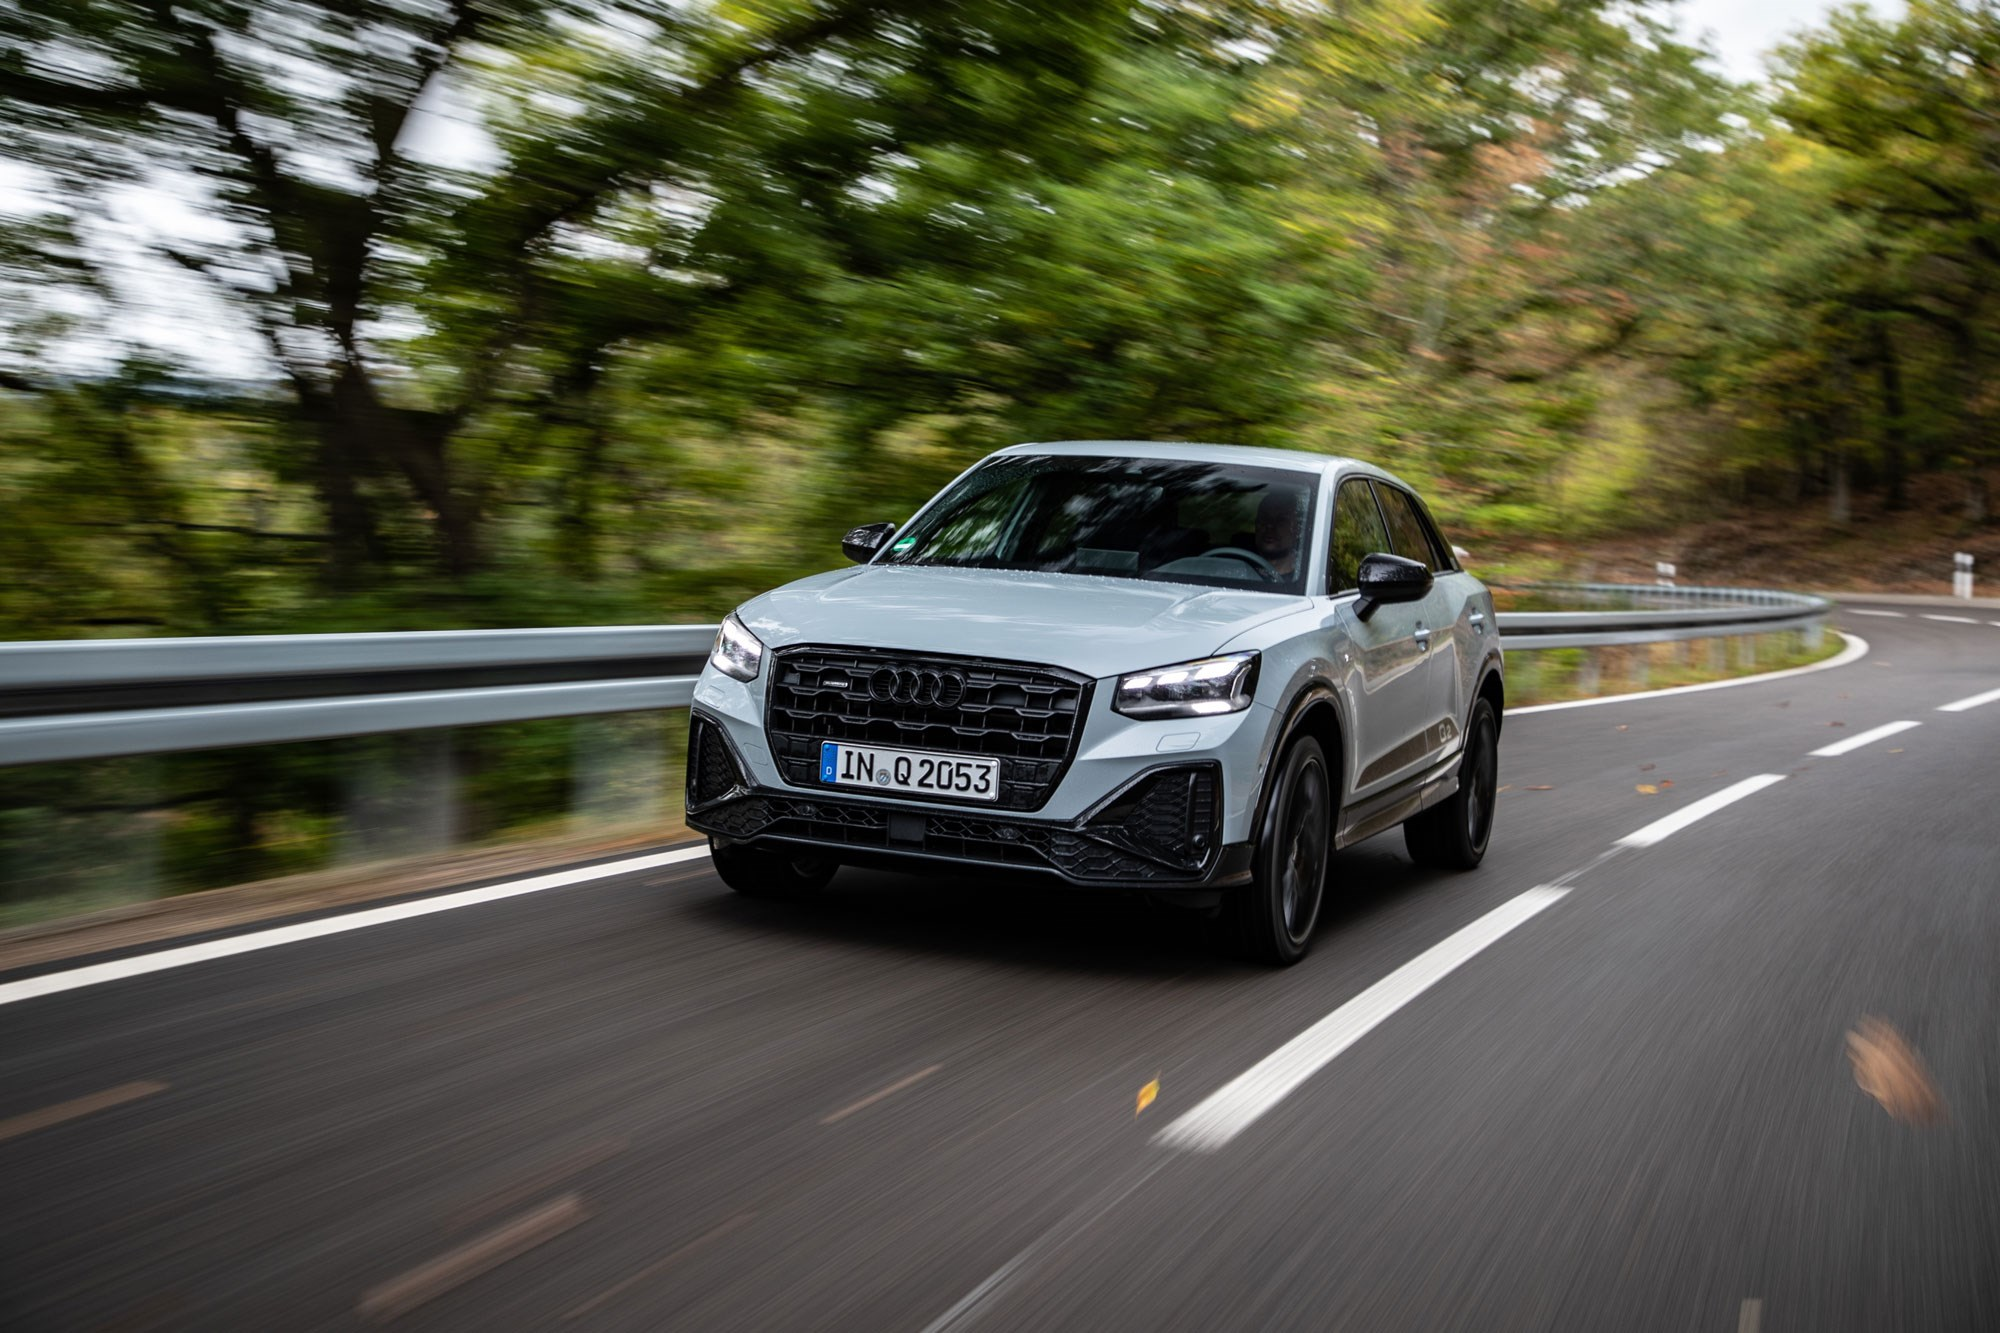 Audi Q2 facelift review: blink and you'll miss it